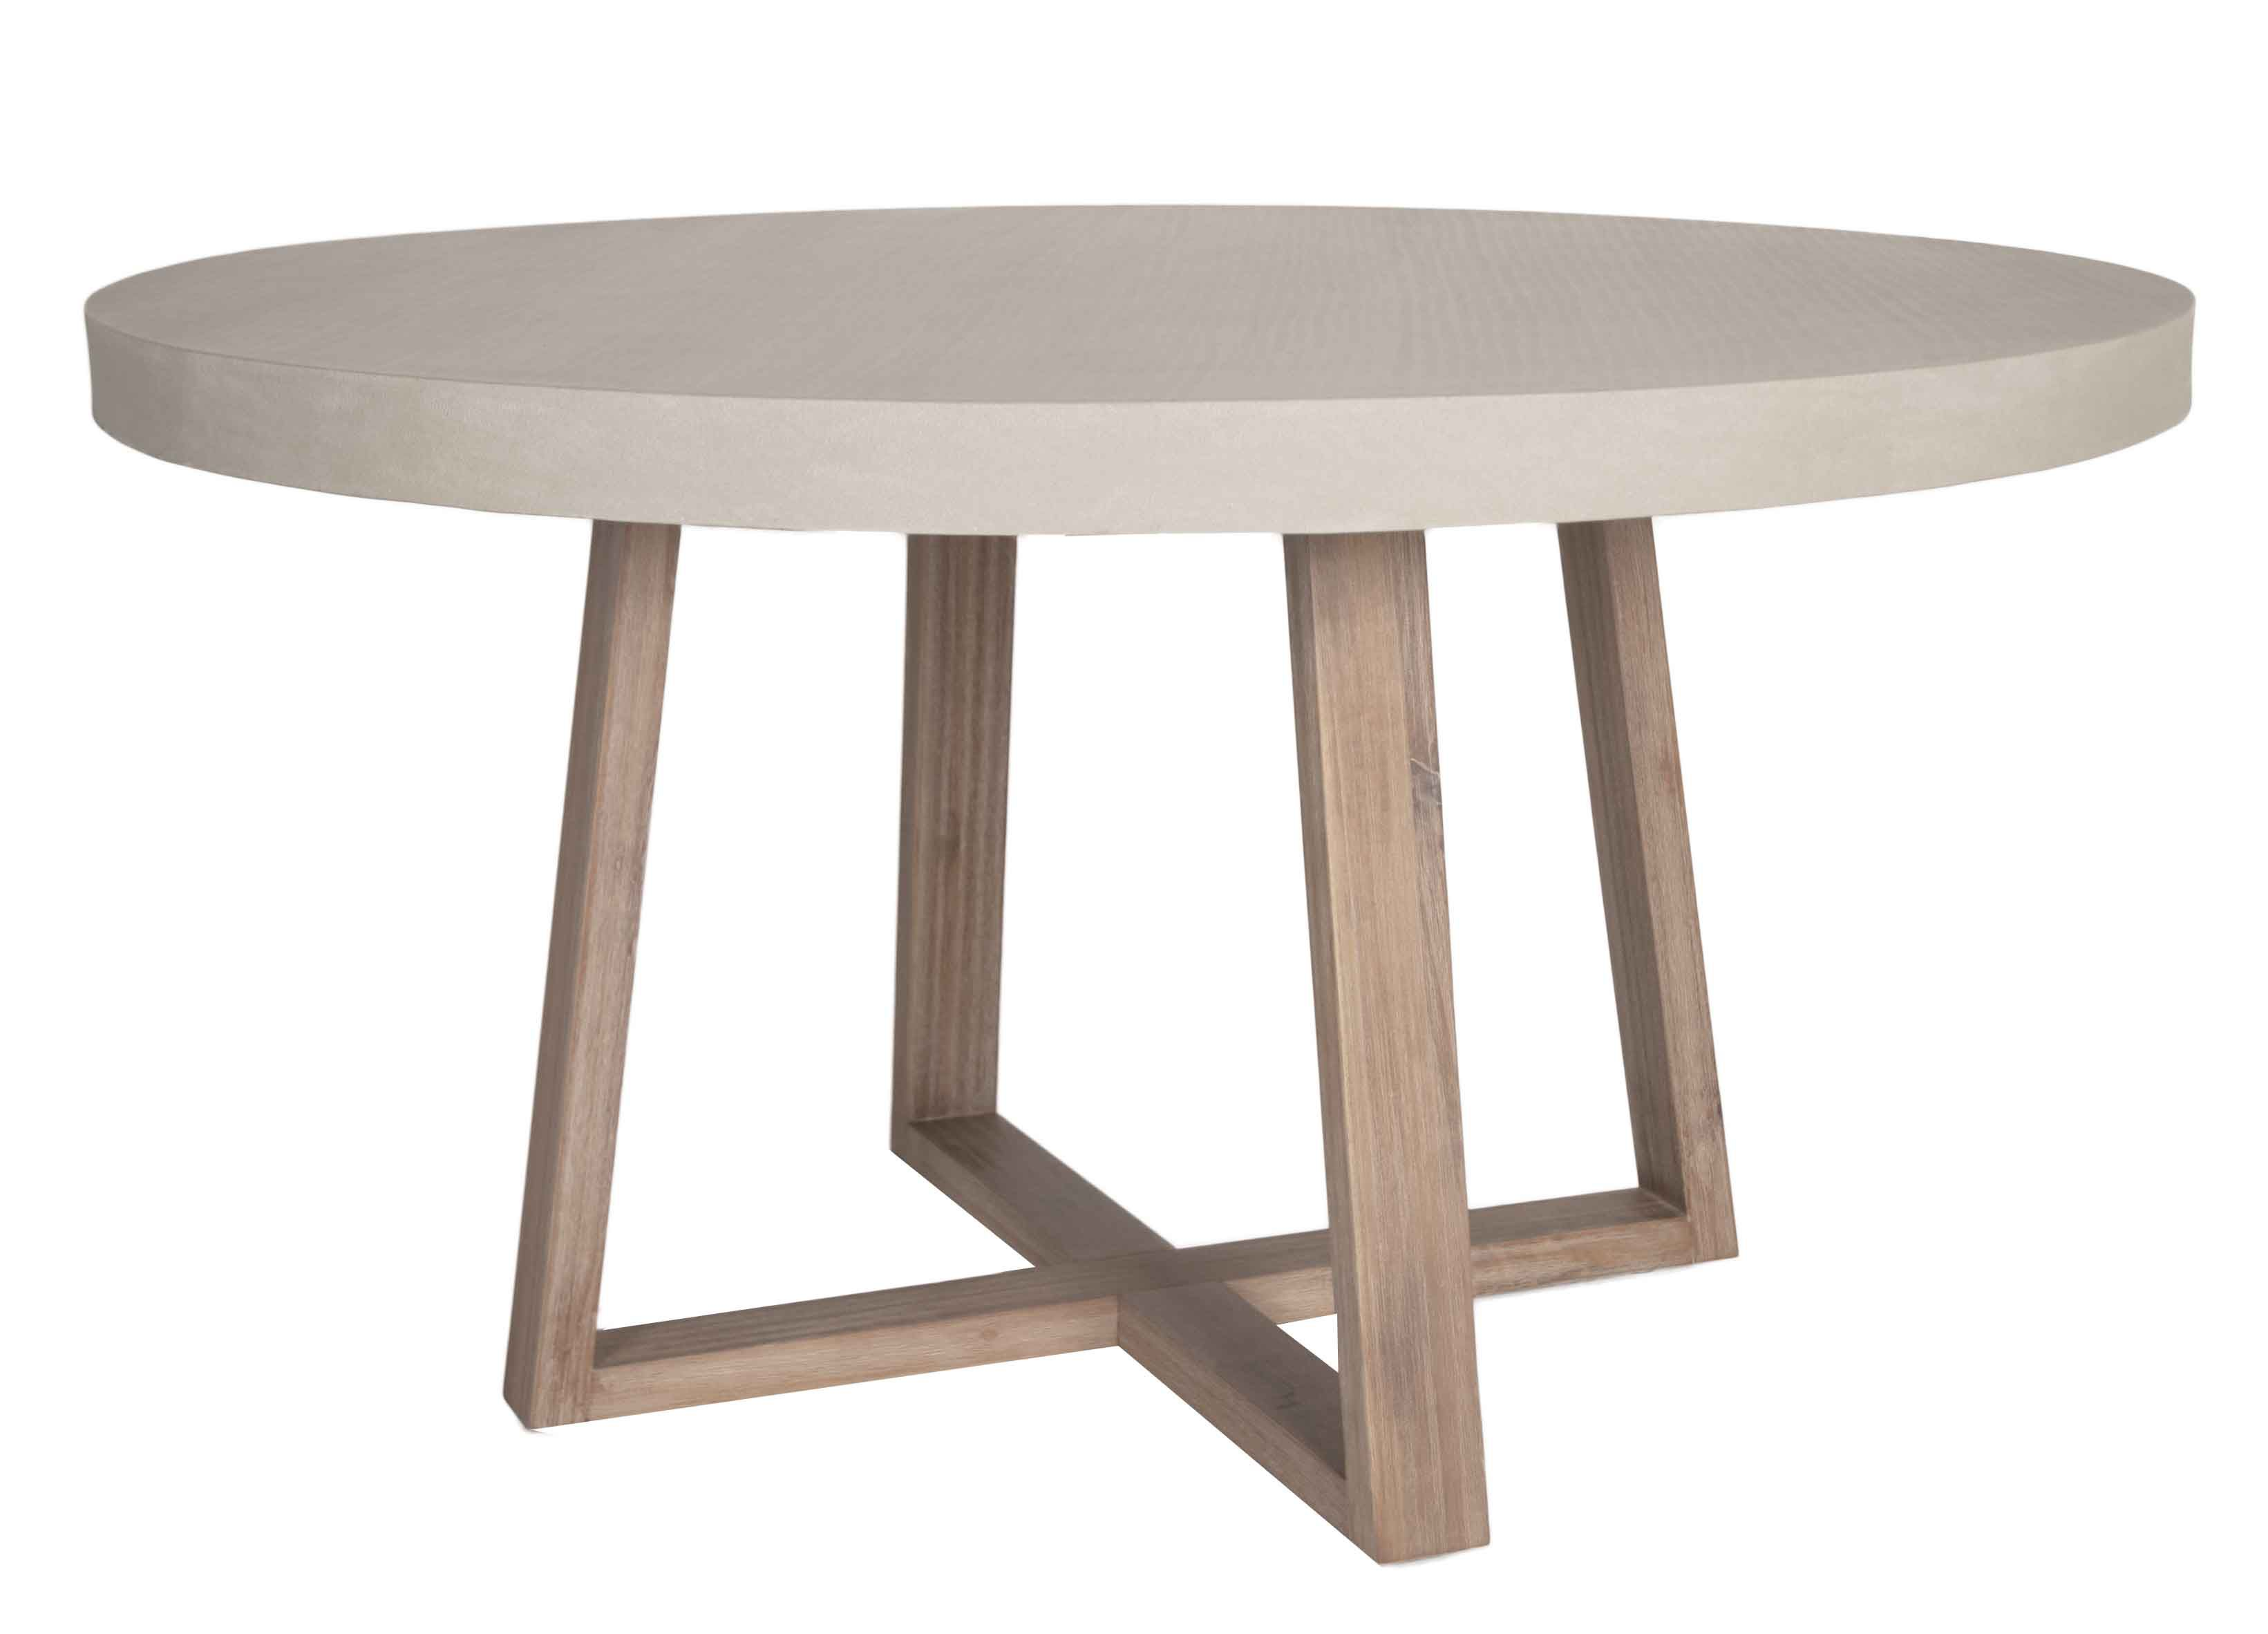 Stoneham Round Dining Table Top Is A Resin And Concrete Mixture Oef Orientexpressfurniture